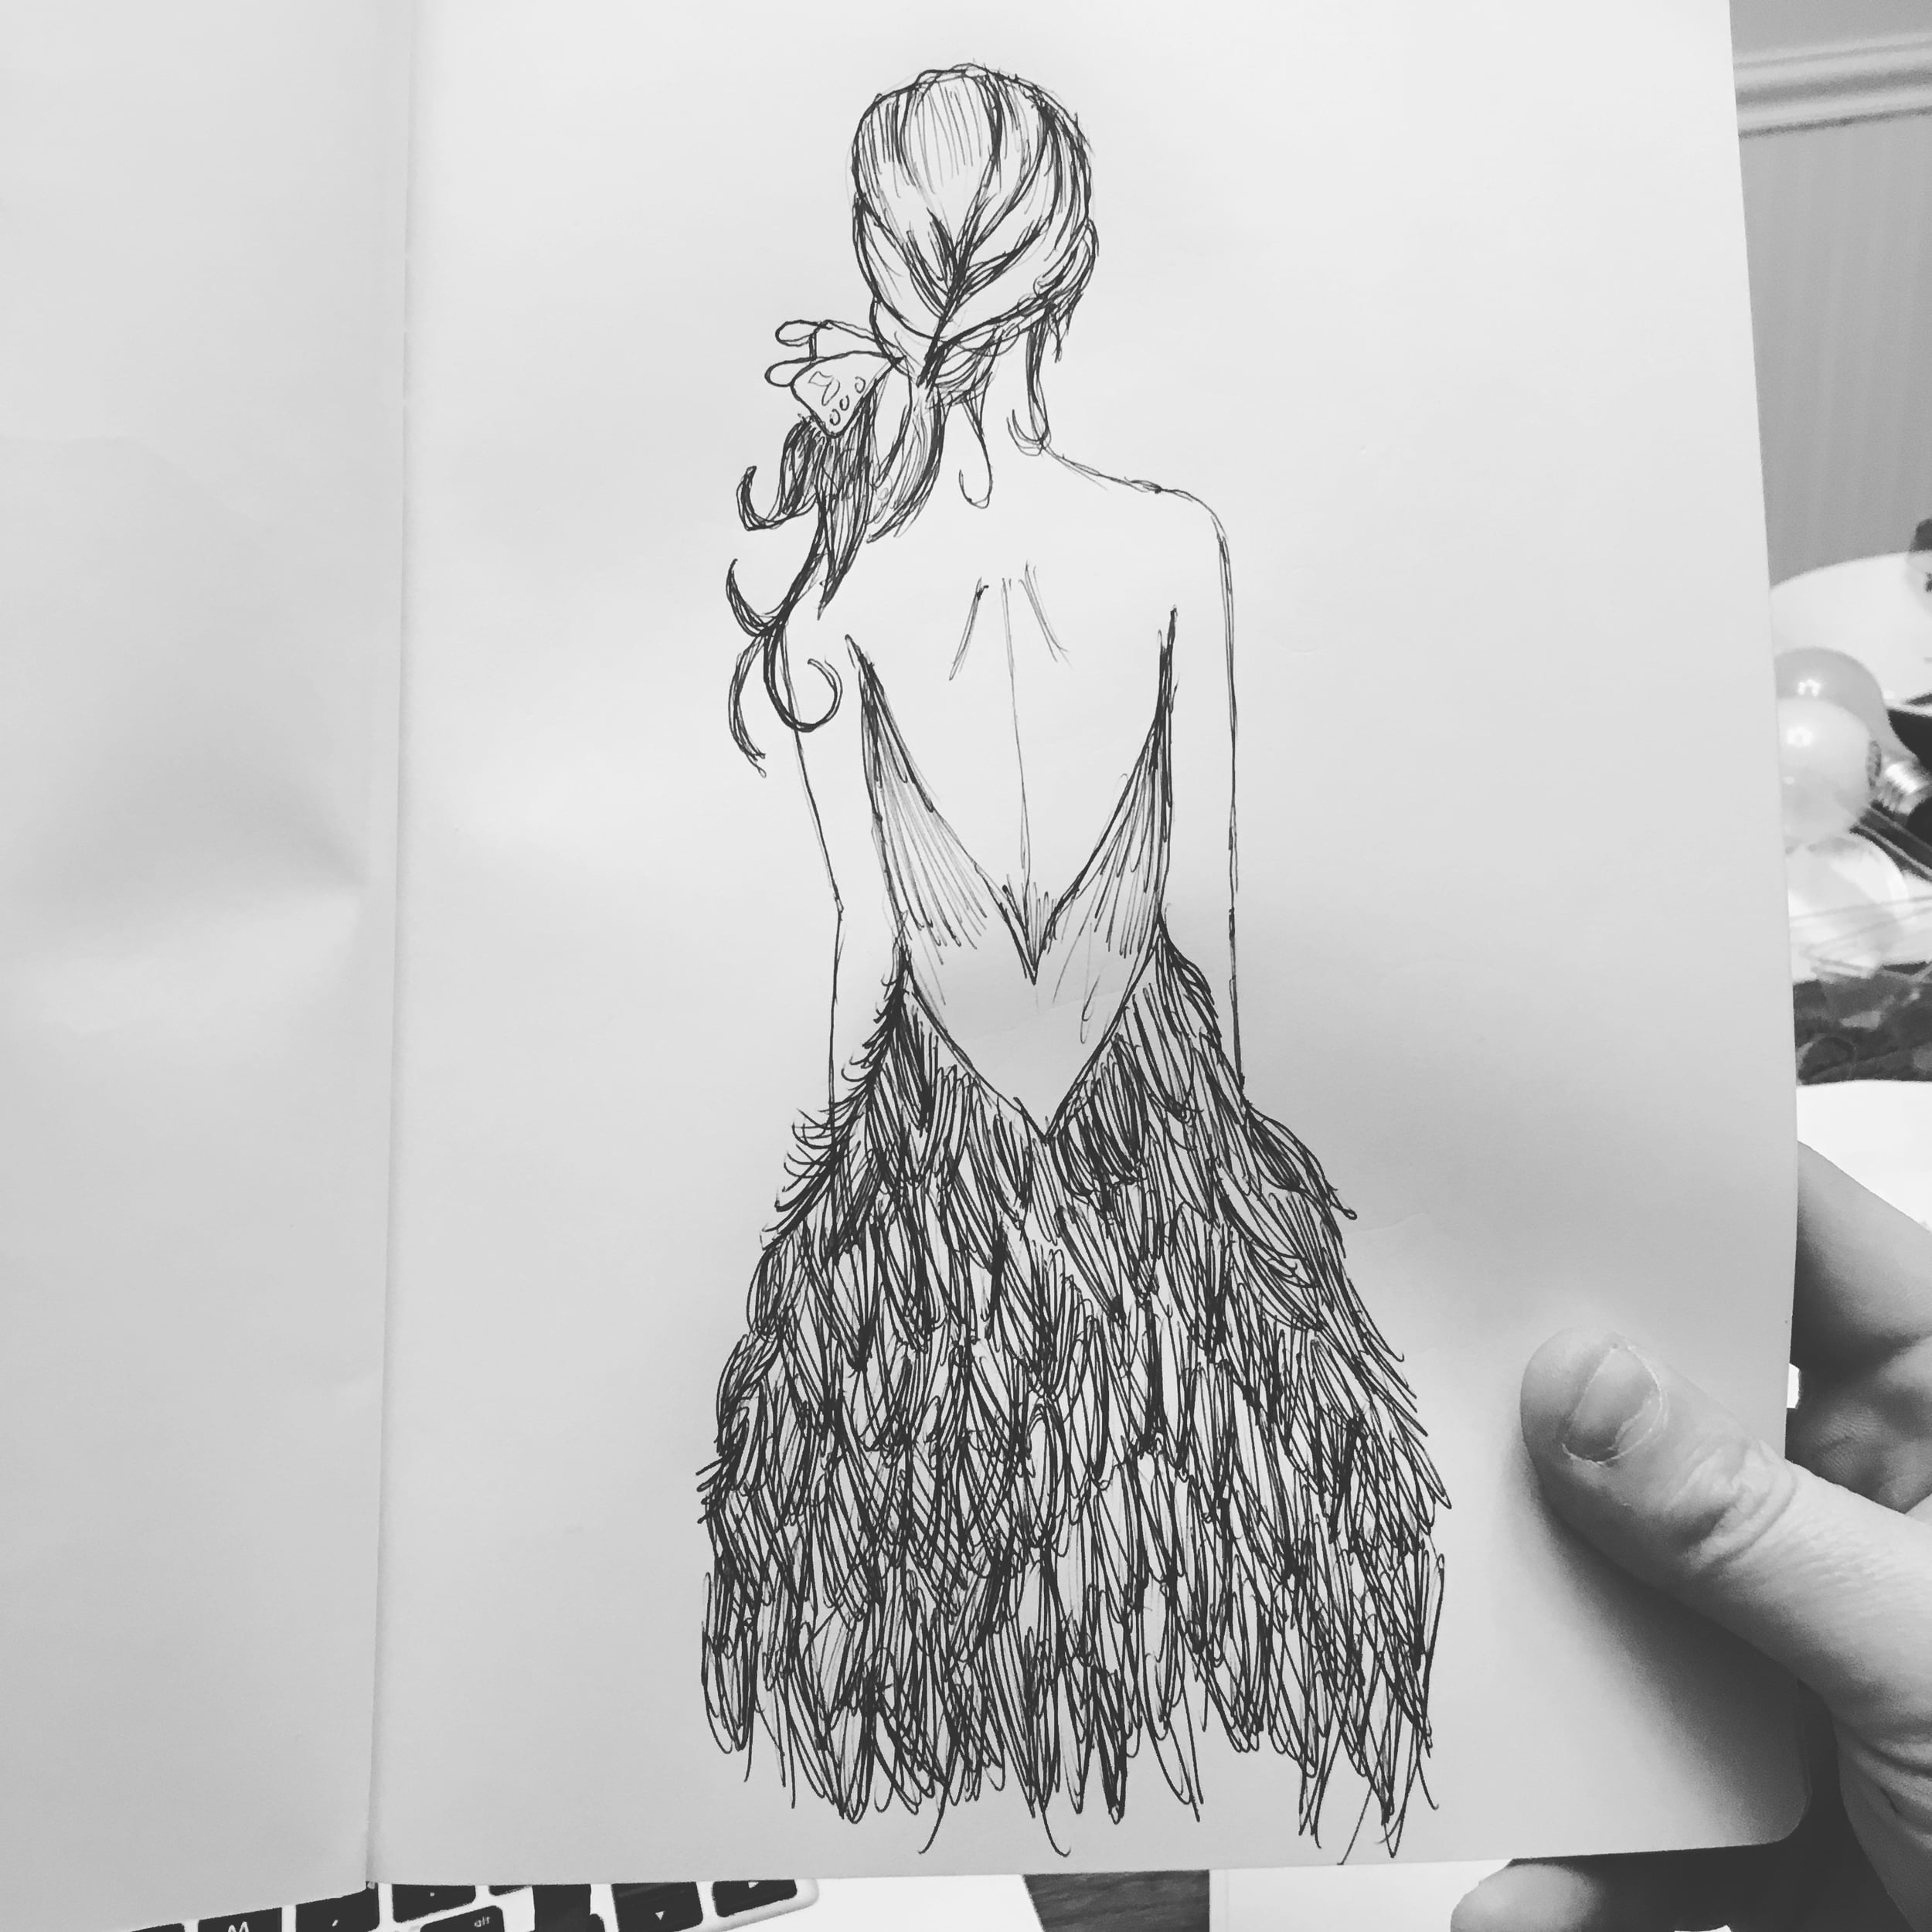 Drawing of a female figure after an artist on Pinterest.